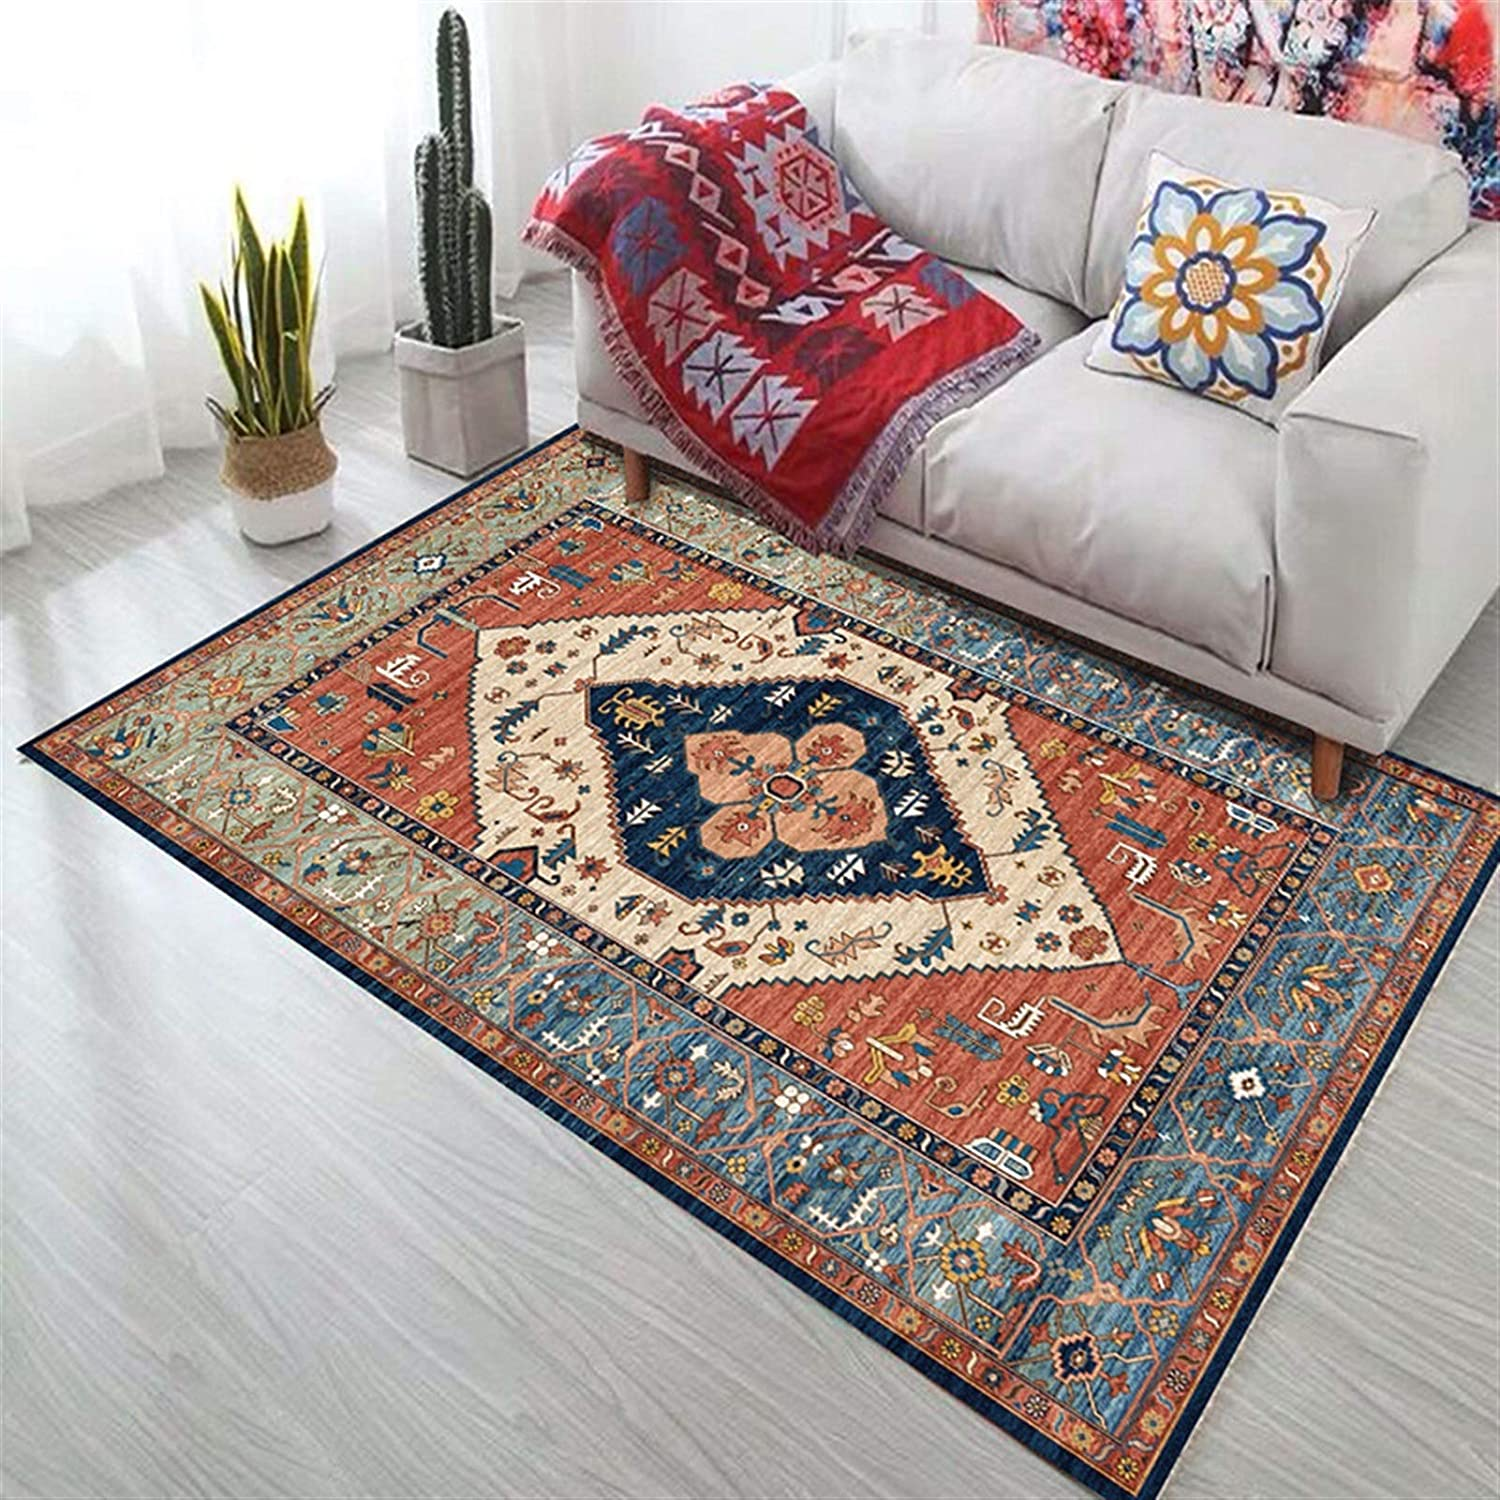 ZXCVBN Small Carpet Cool in Don't miss the campaign Sales Command Room East Carpe to Area Life